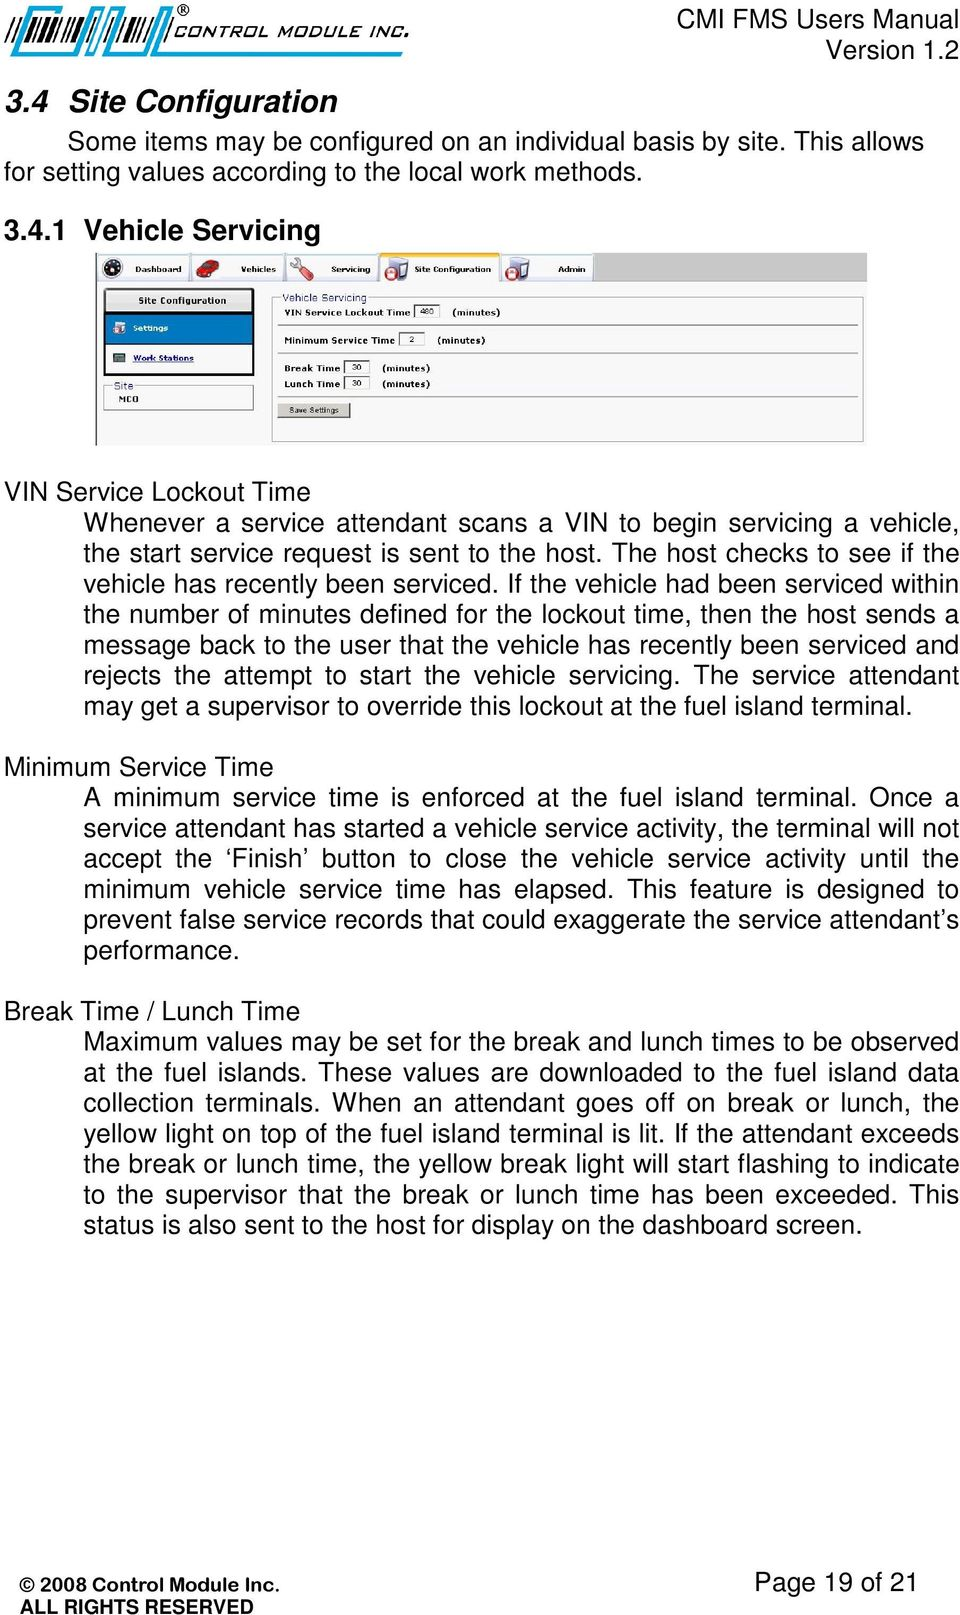 If the vehicle had been serviced within the number of minutes defined for the lockout time, then the host sends a message back to the user that the vehicle has recently been serviced and rejects the